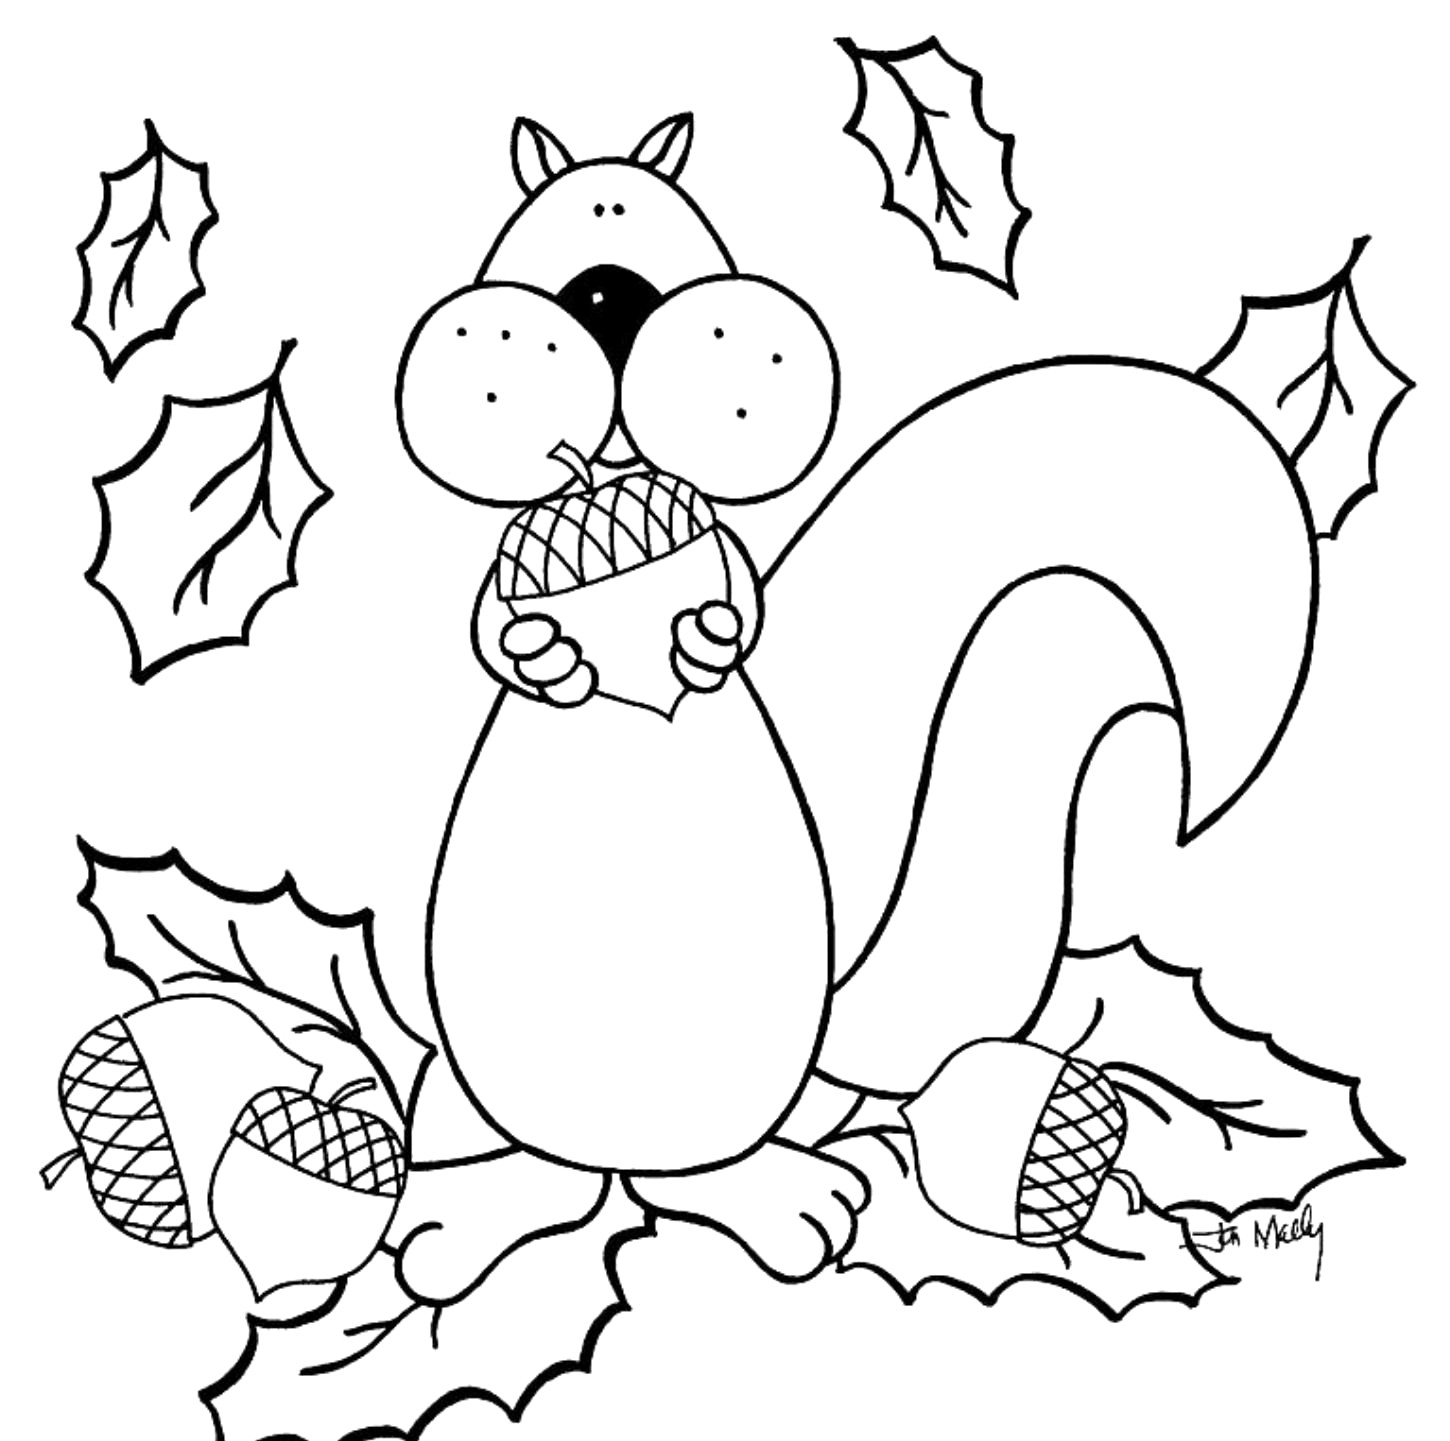 picture about Fall Coloring Pages Printable Free identify Totally free Printable Tumble Coloring Internet pages for Little ones - Most straightforward Coloring